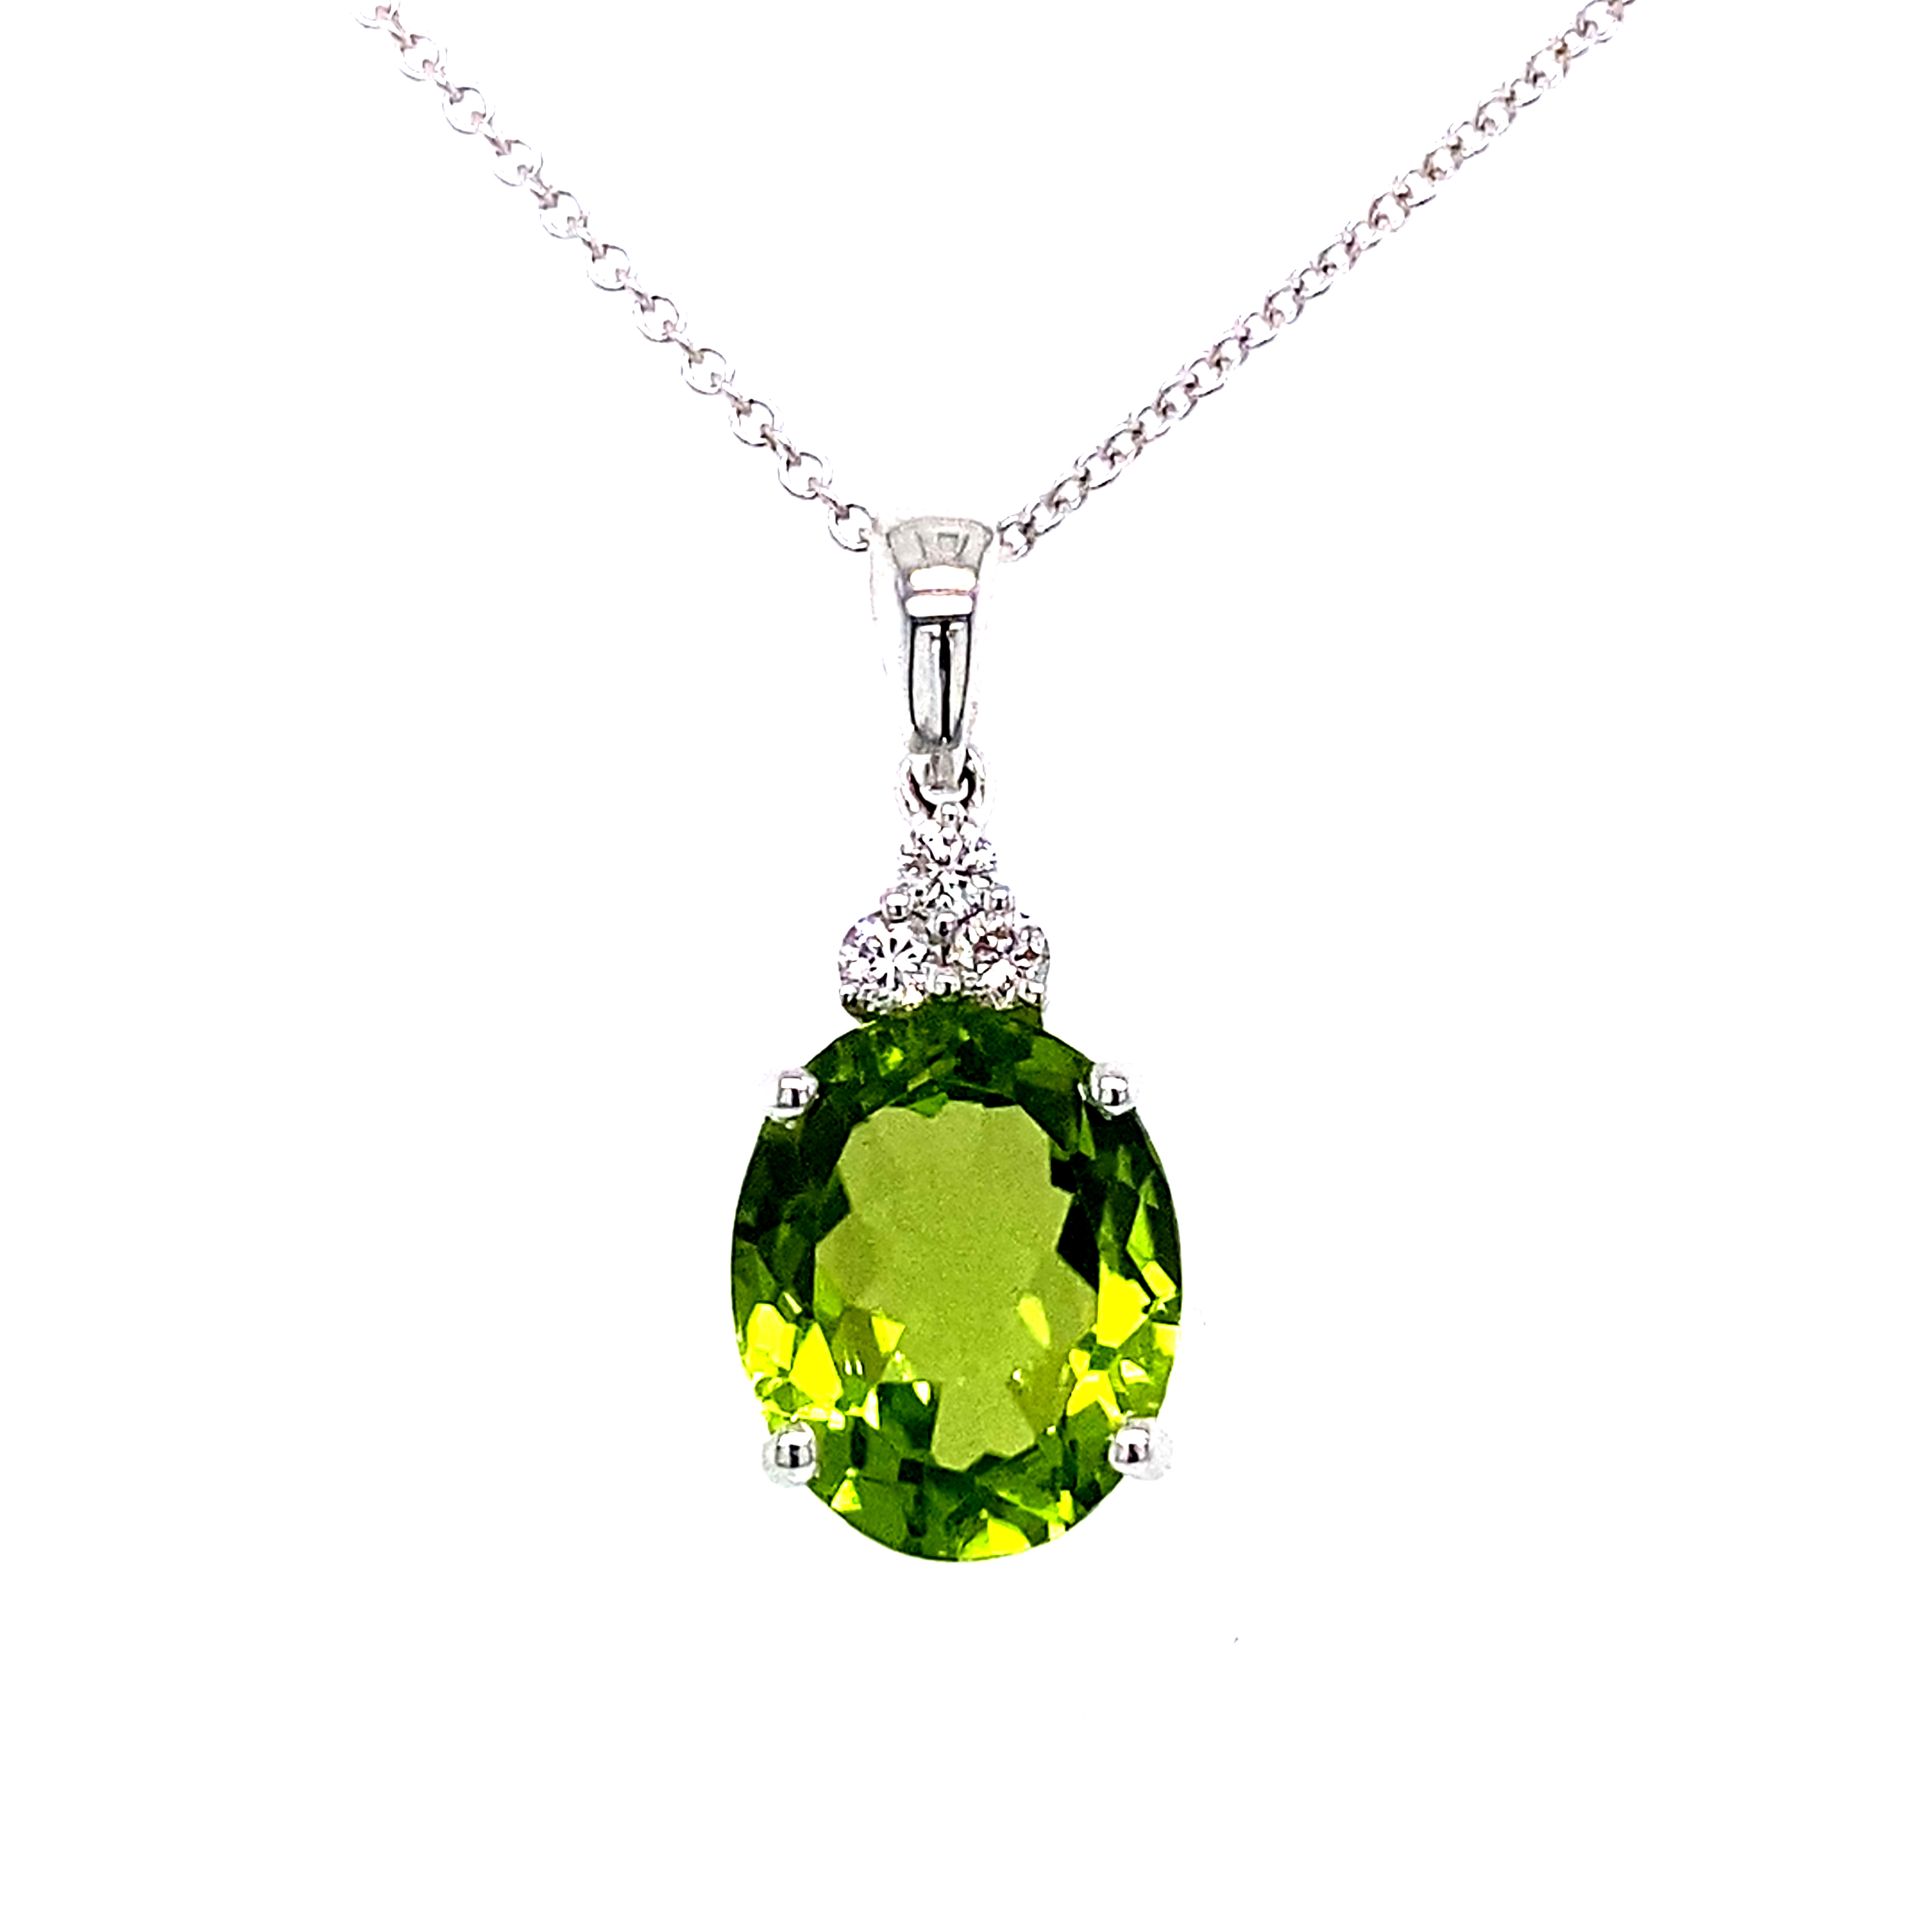 18 carat White Gold Oval Peridot and Diamond Pendant